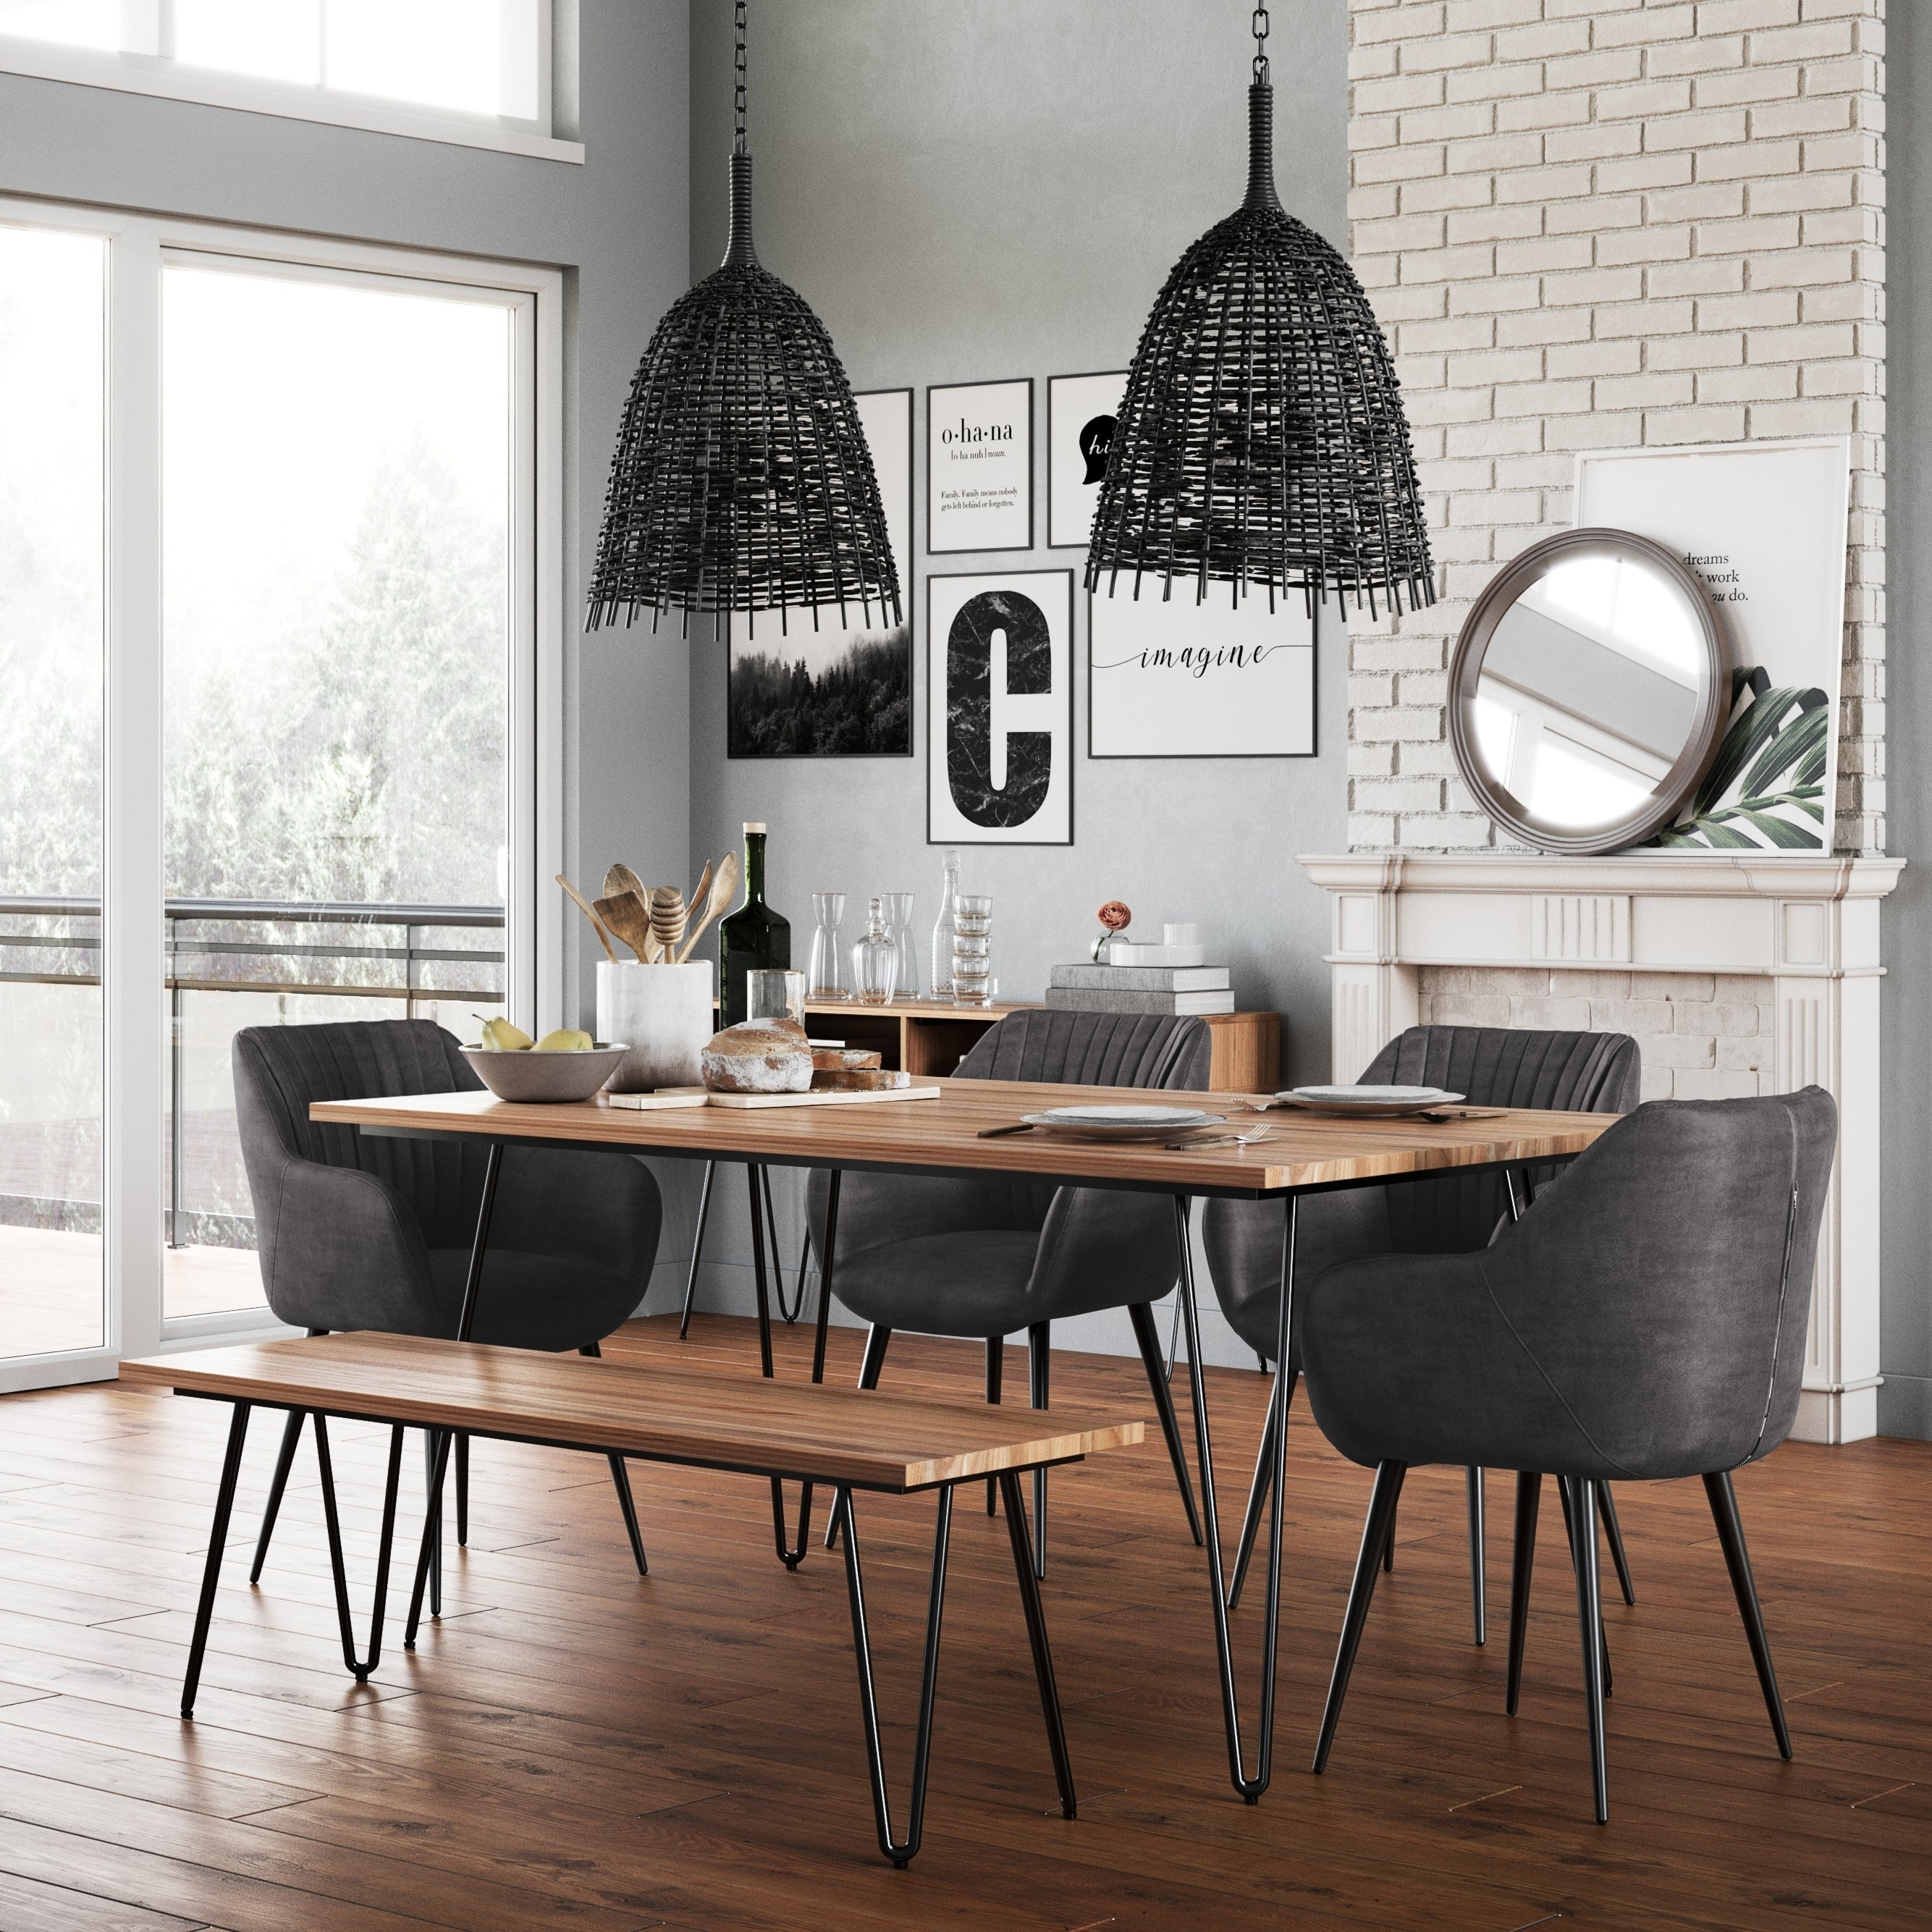 Wyndenhall Cadence Mid Century Modern 6 Pc Dining Set With Bench 4 Upholstered Dining Chairs And 66 Inch Wide Table Overstock 28987701